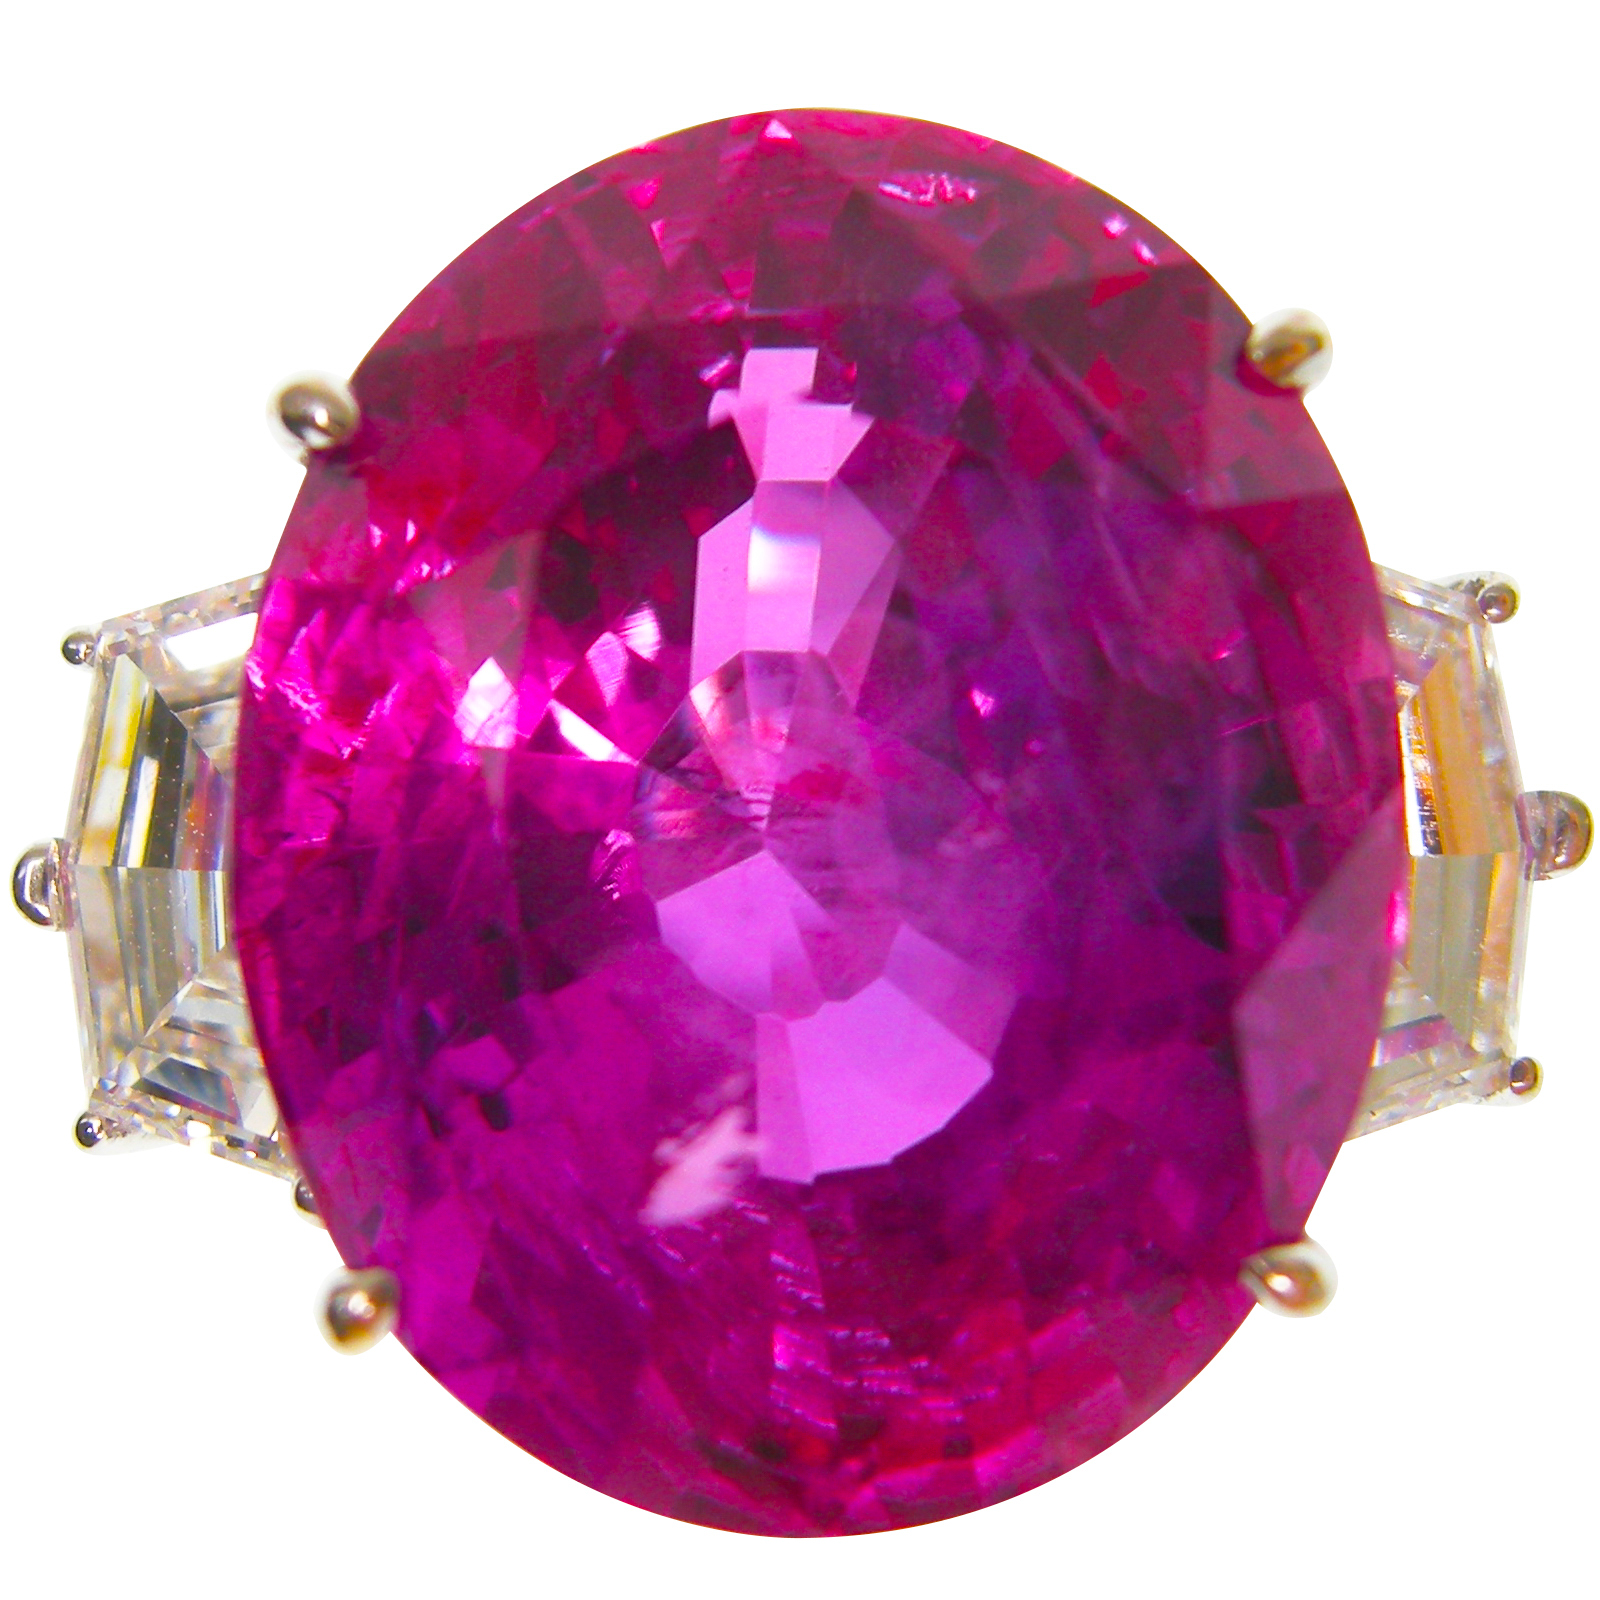 PINK SAPPHIRE & DIAMOND RING BESPOKE FINE JEWELLERY BY SHAHINA HATTA HONG KONG